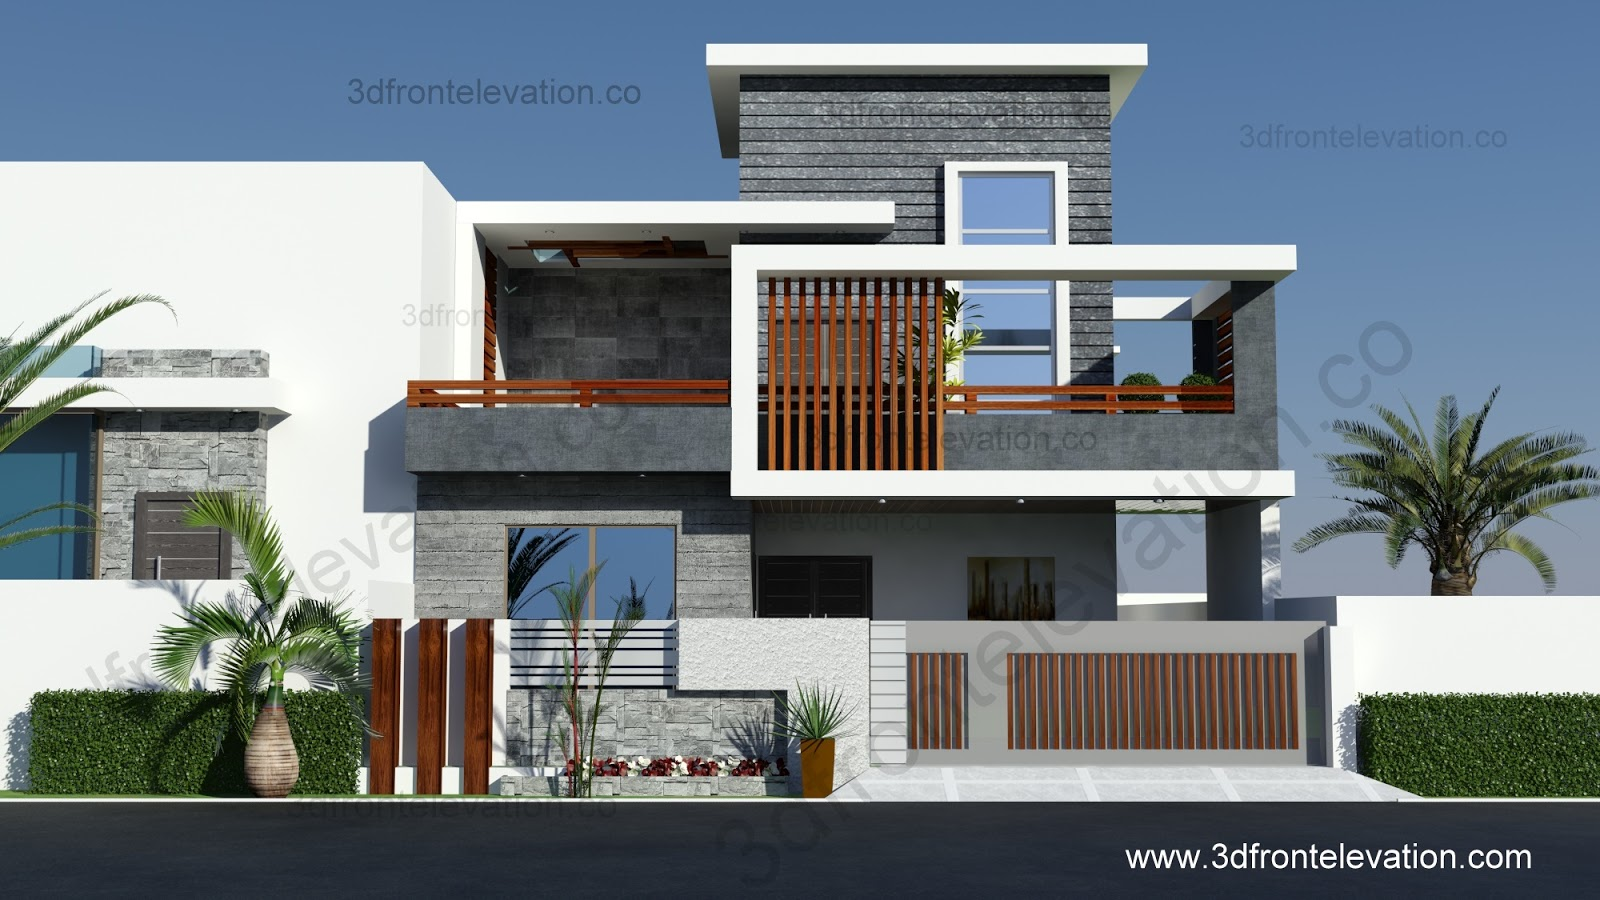 ... house play layout elevation 10 marla house plan 10 marla house plan